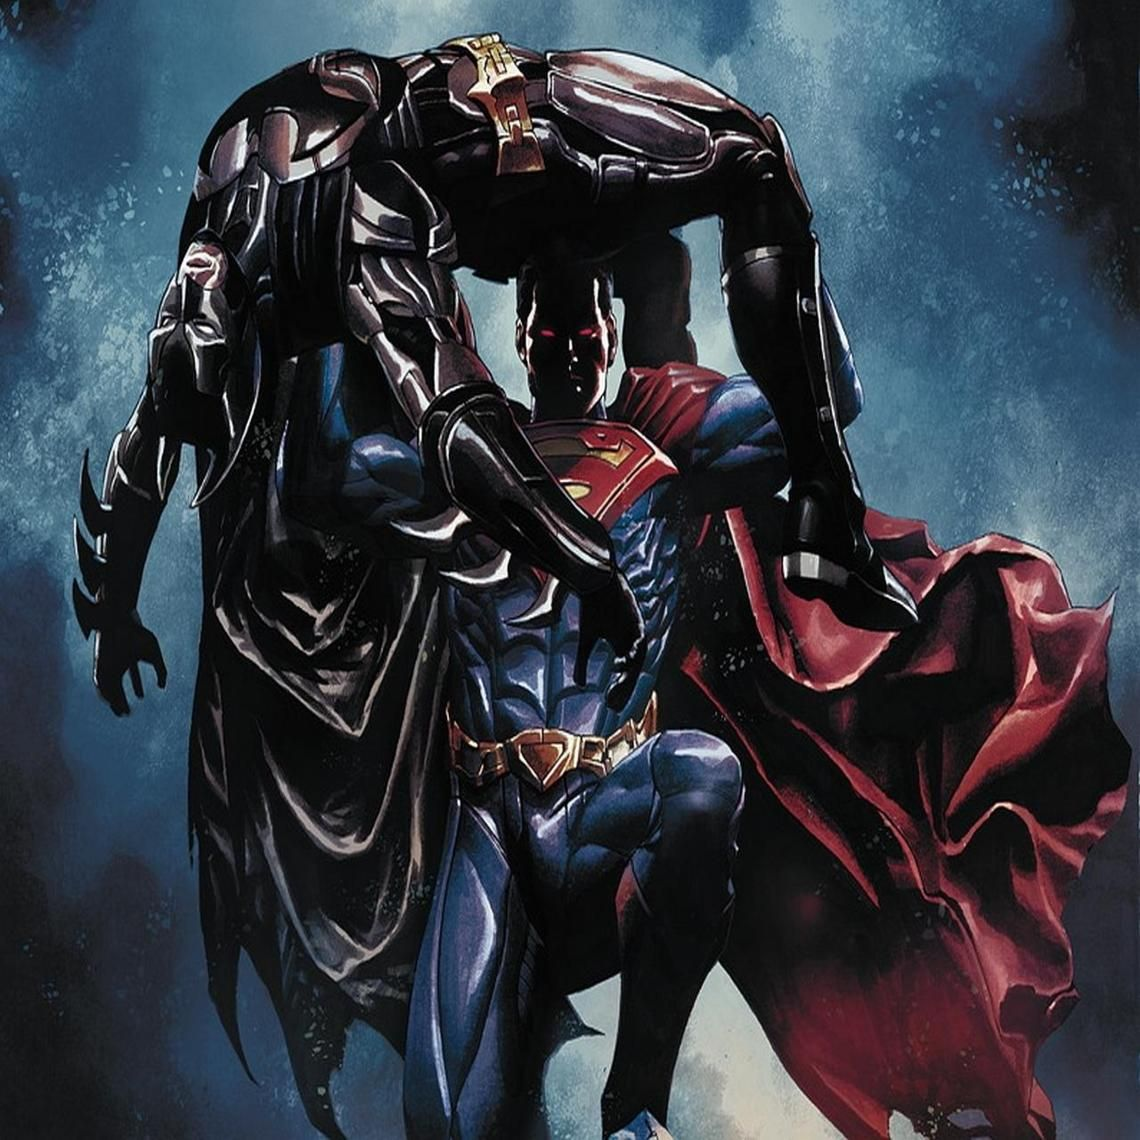 Superman Injustice Batman Vs Superman Batman